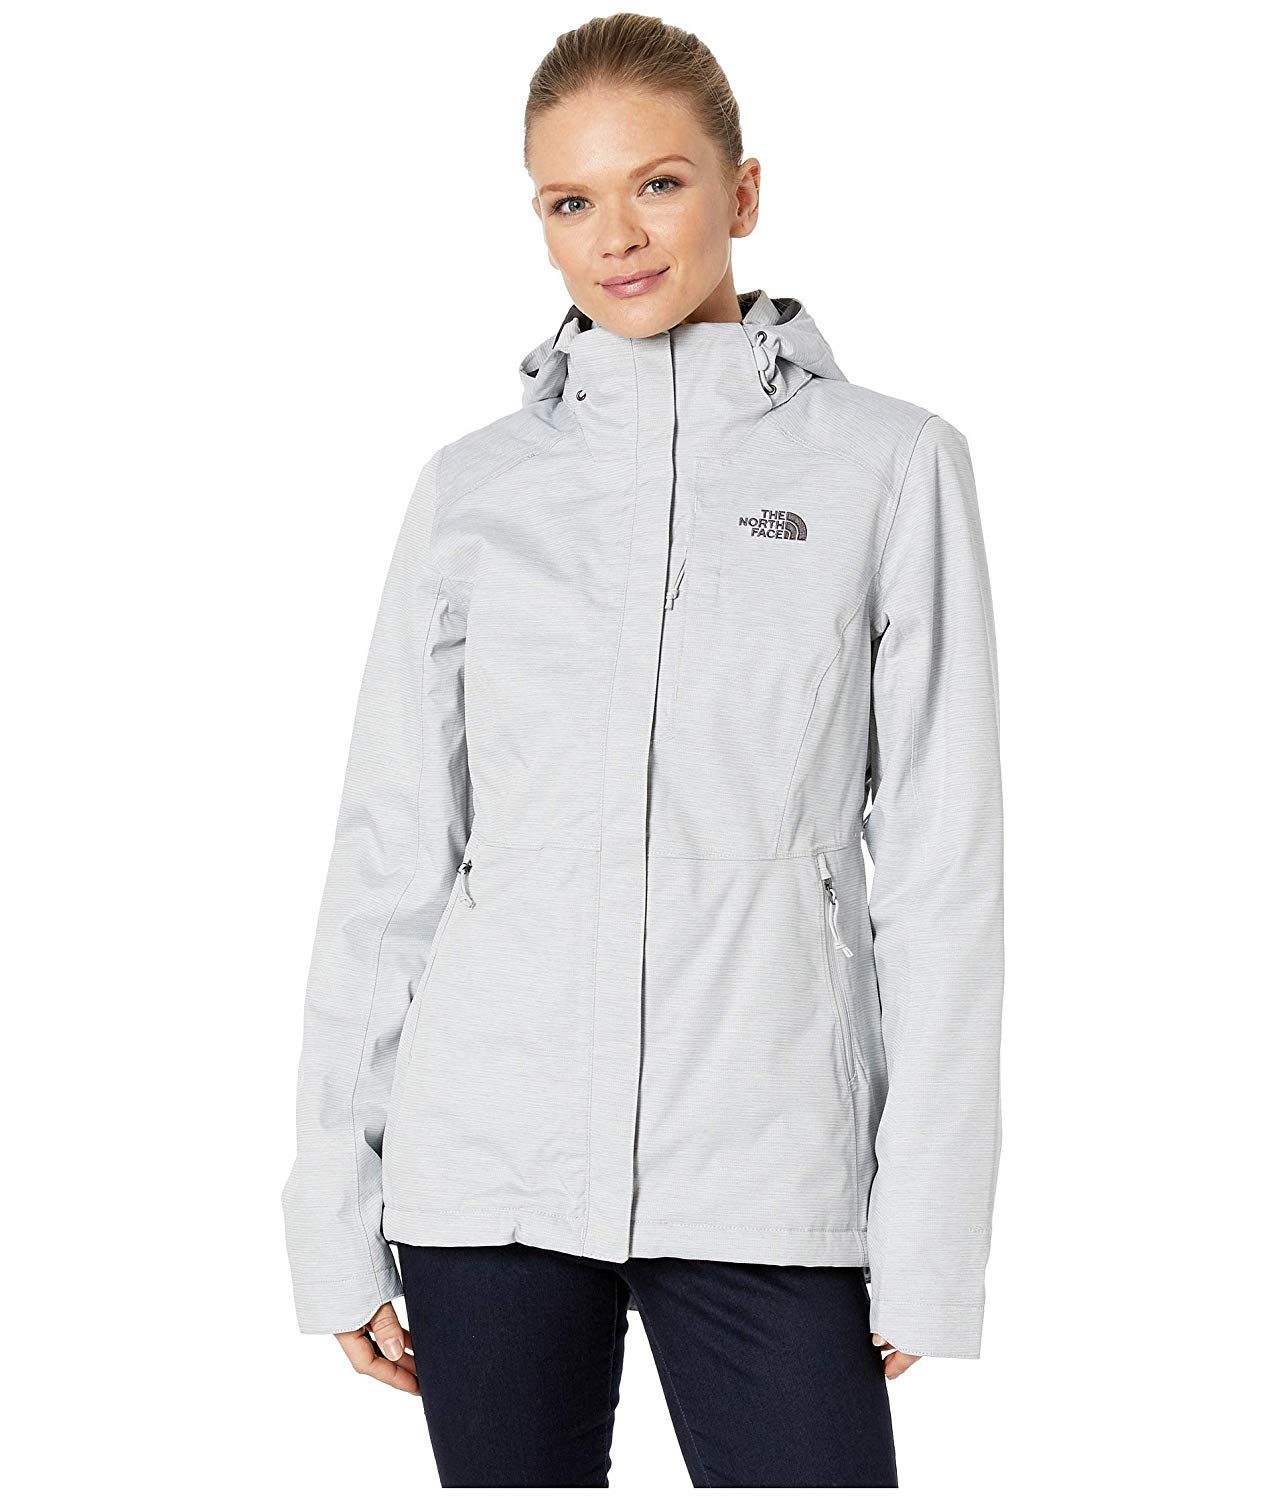 The North Face Womens Inlux 2 0 Insulated Jacket Sports Outdoors Amazon Affiliate Link Click Image For Detail A North Face Women Jackets Lightweight Jacket [ 1500 x 1286 Pixel ]